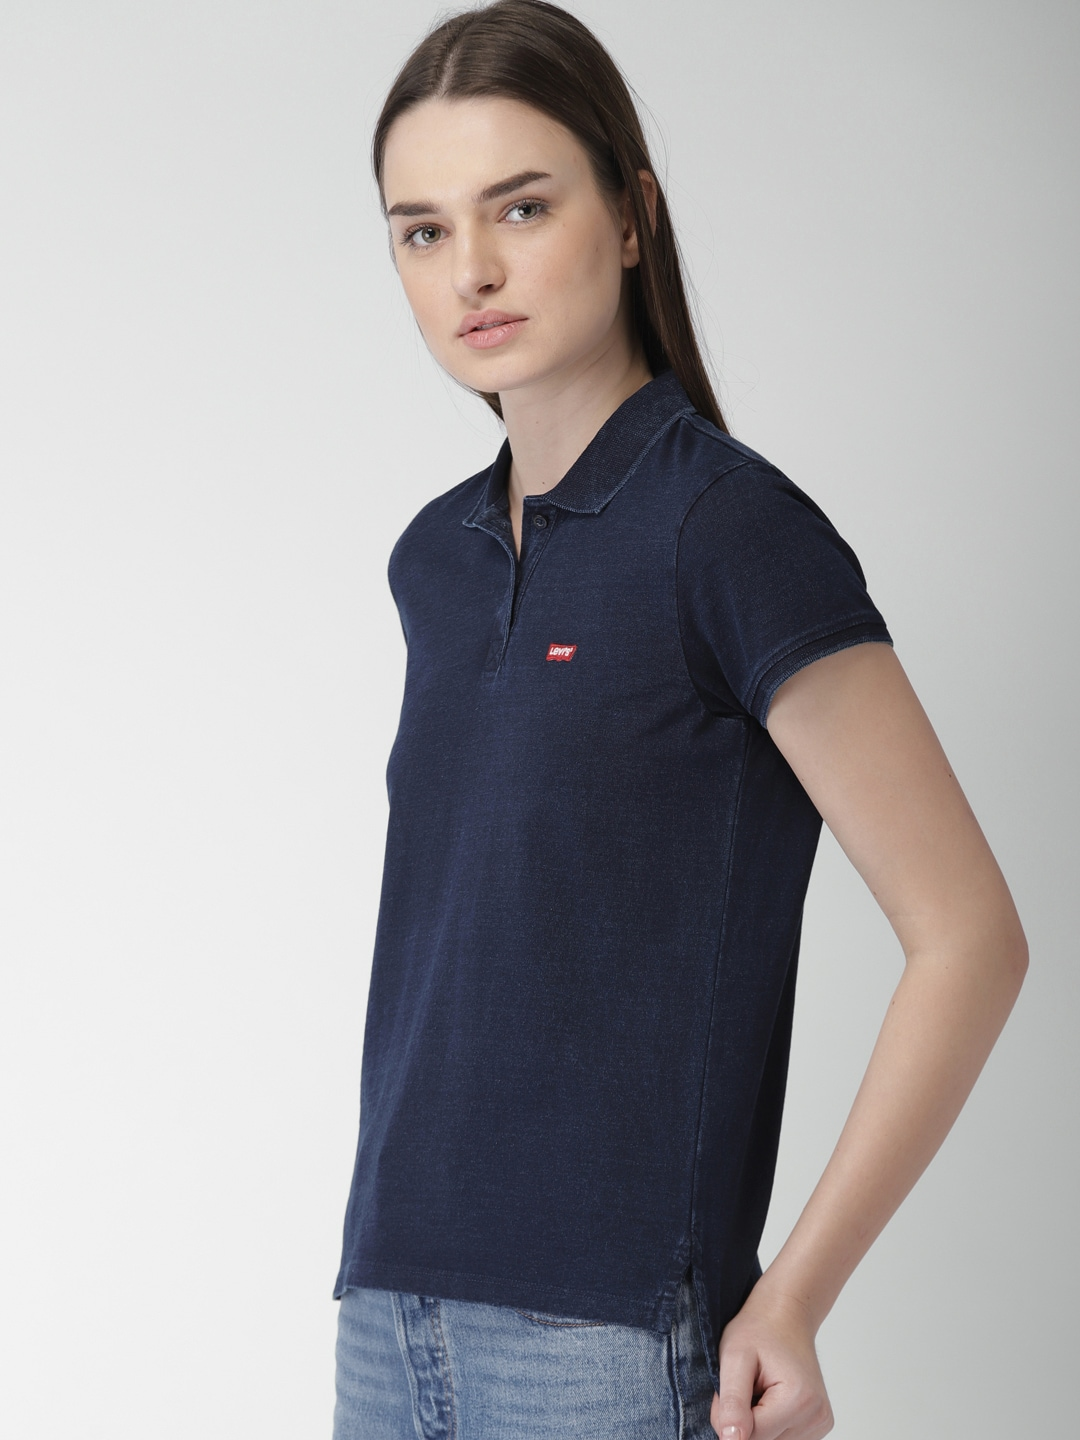 Search Baju Jeans By Henni Collection